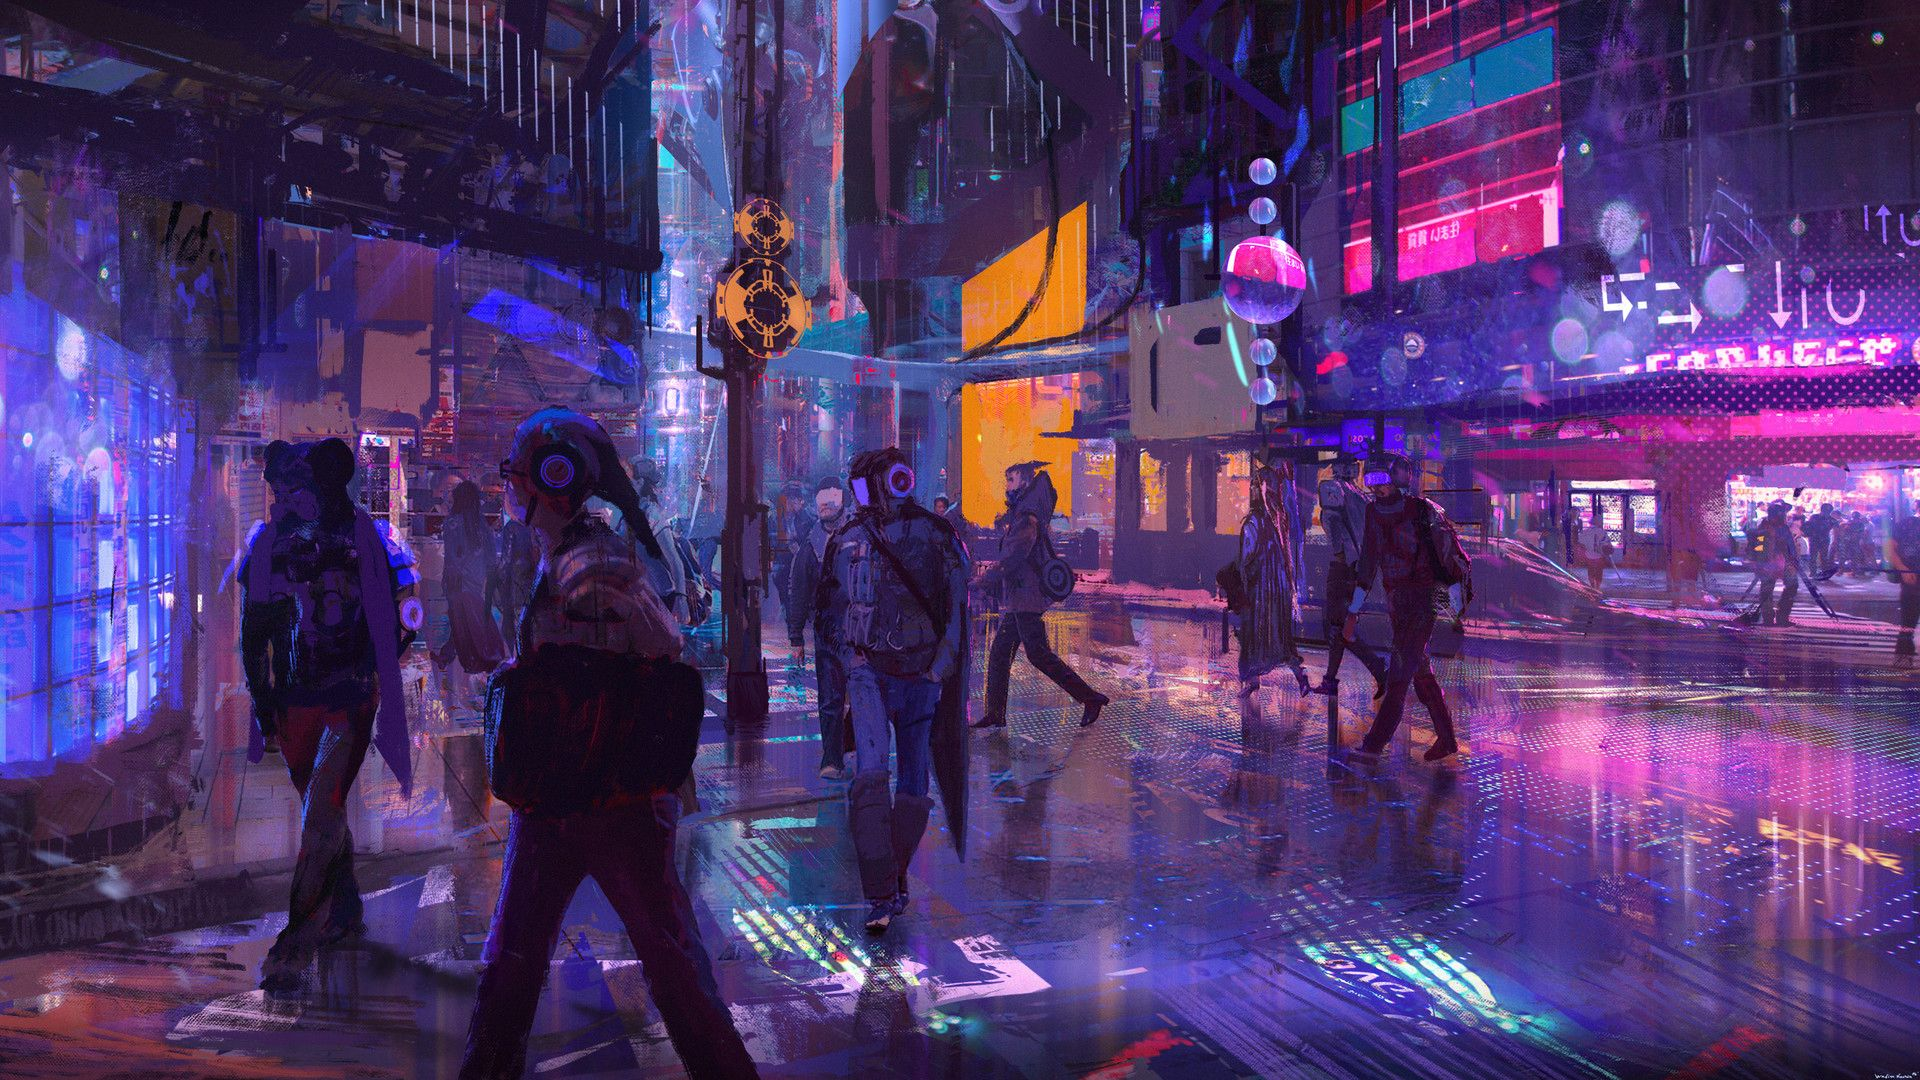 Cyberpunk Wallpapers Collection (1920x1080) Need #iPhone